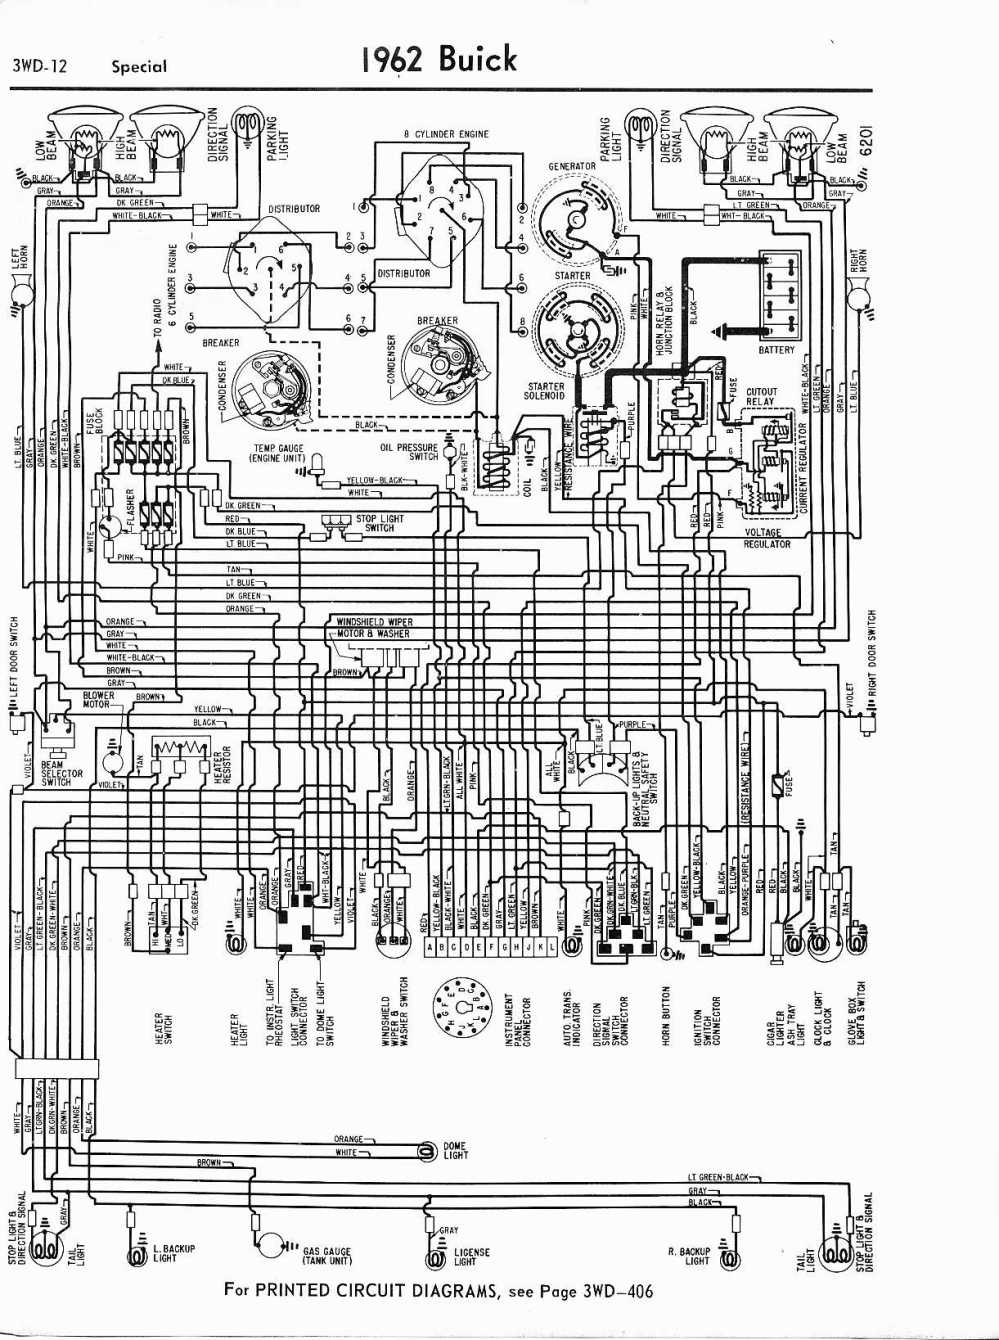 medium resolution of buick 455 wiring diagram simple wiring schema 72 olds 442 1972 buick 455 wiring diagram simple